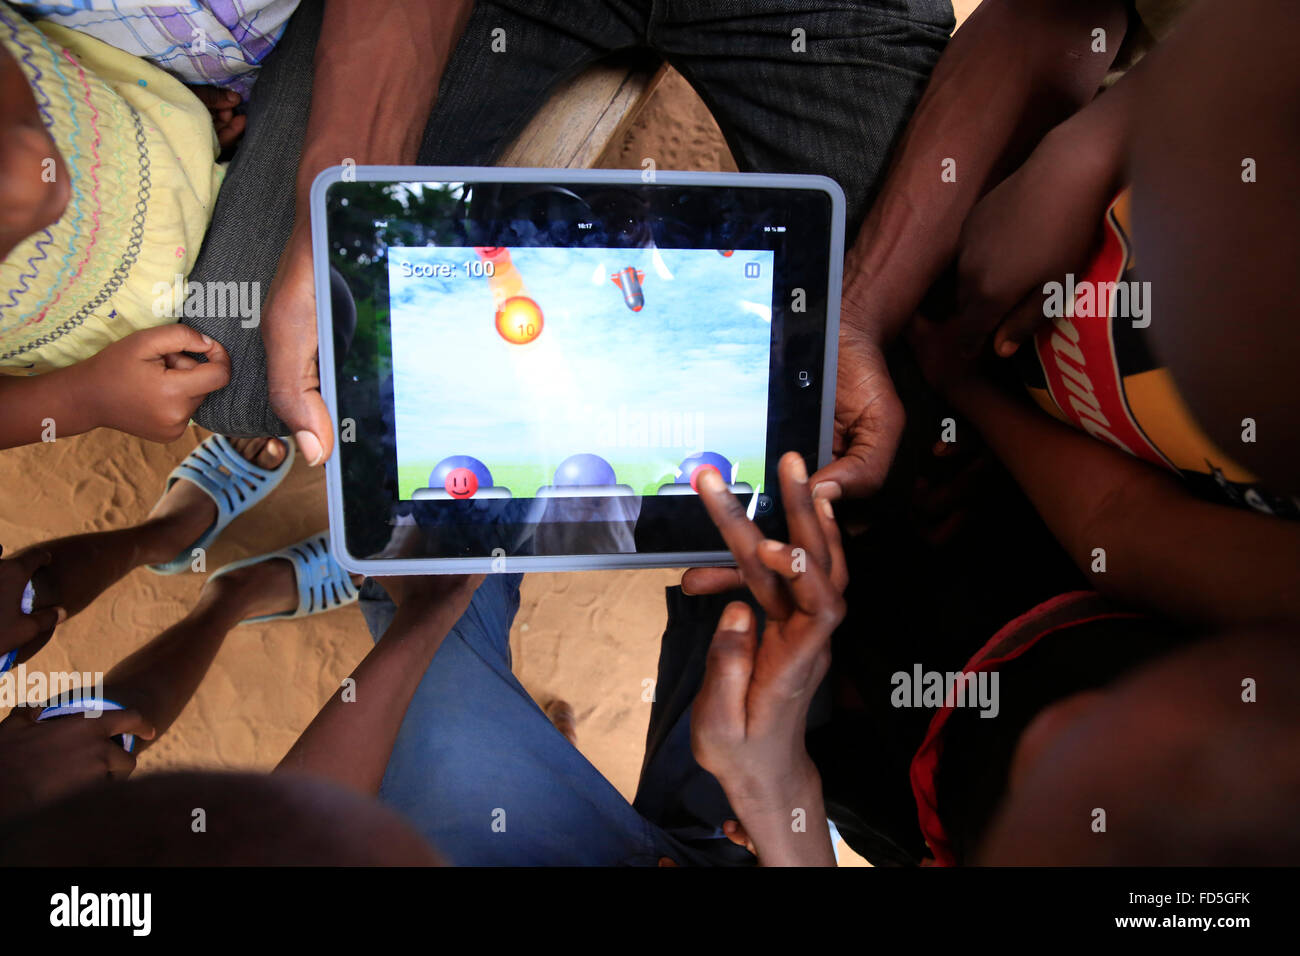 African children playing with a digital tablet. - Stock Image